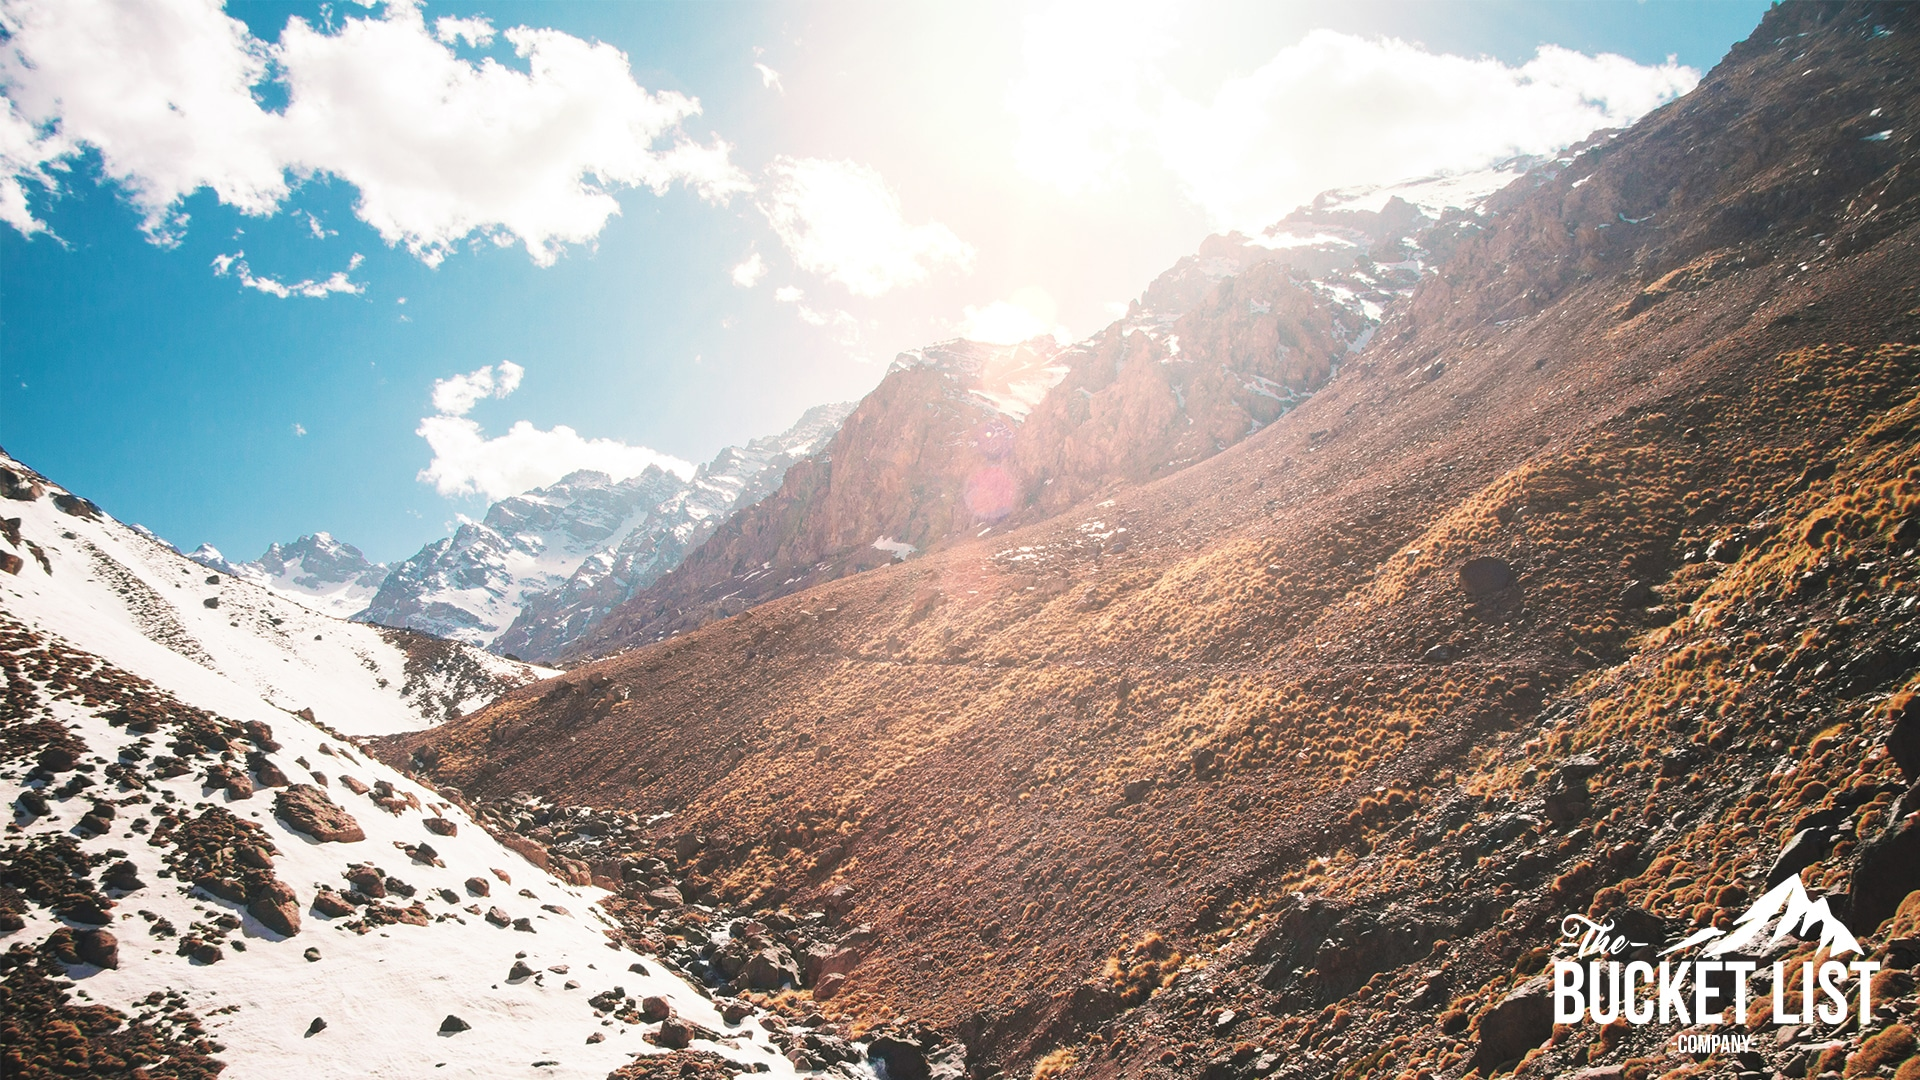 a shot of Mount Toubkal in Morocco